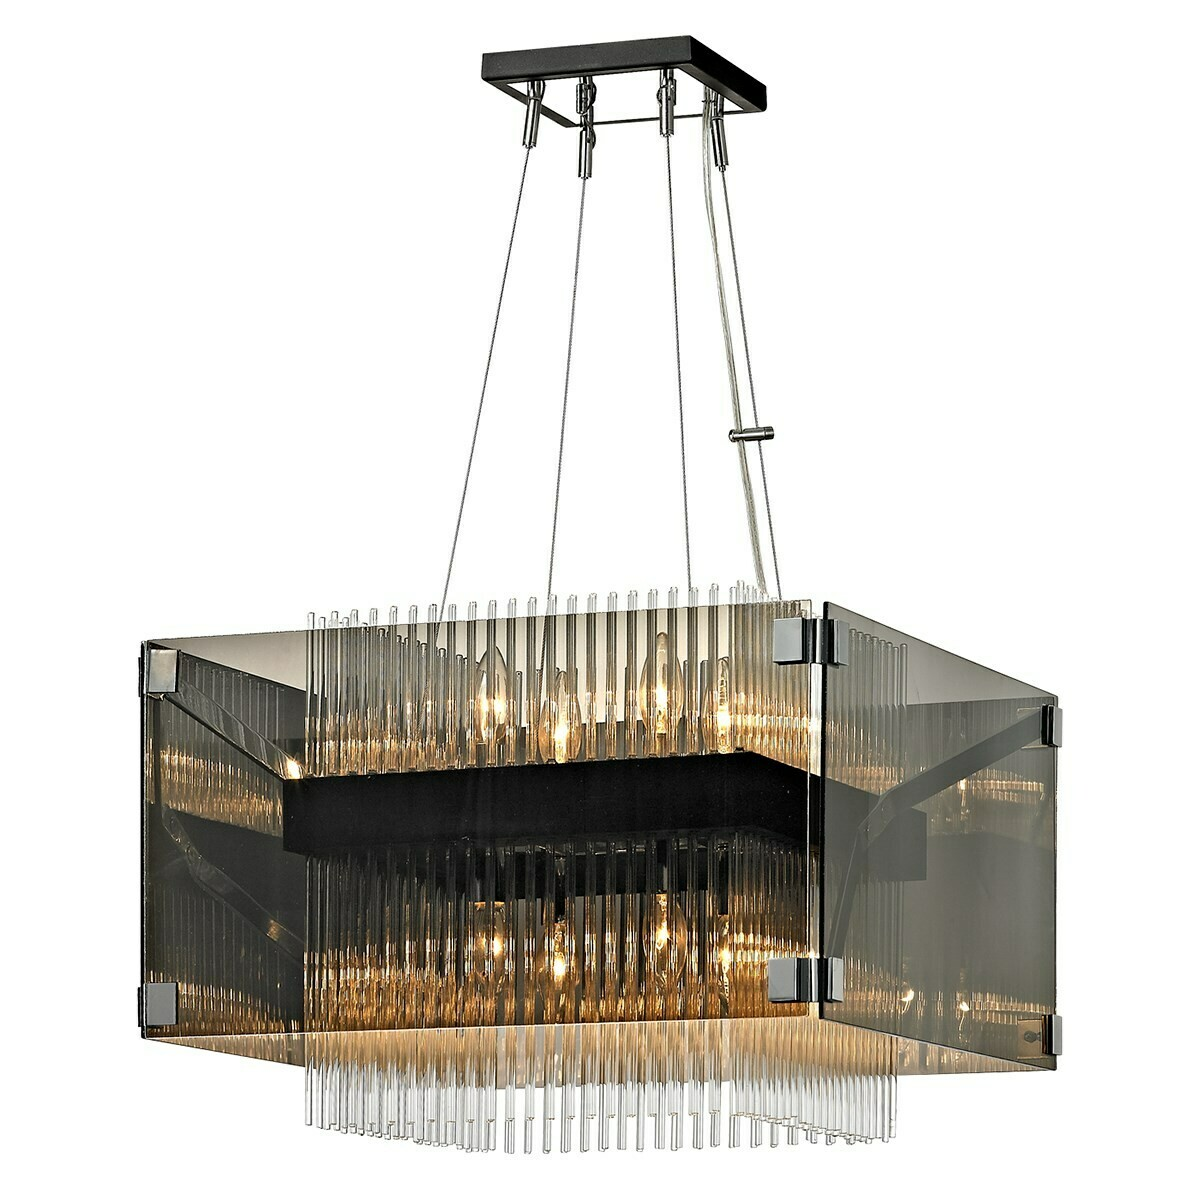 Apollo S 8xE14 Chandelier dark bronze/polished chrome